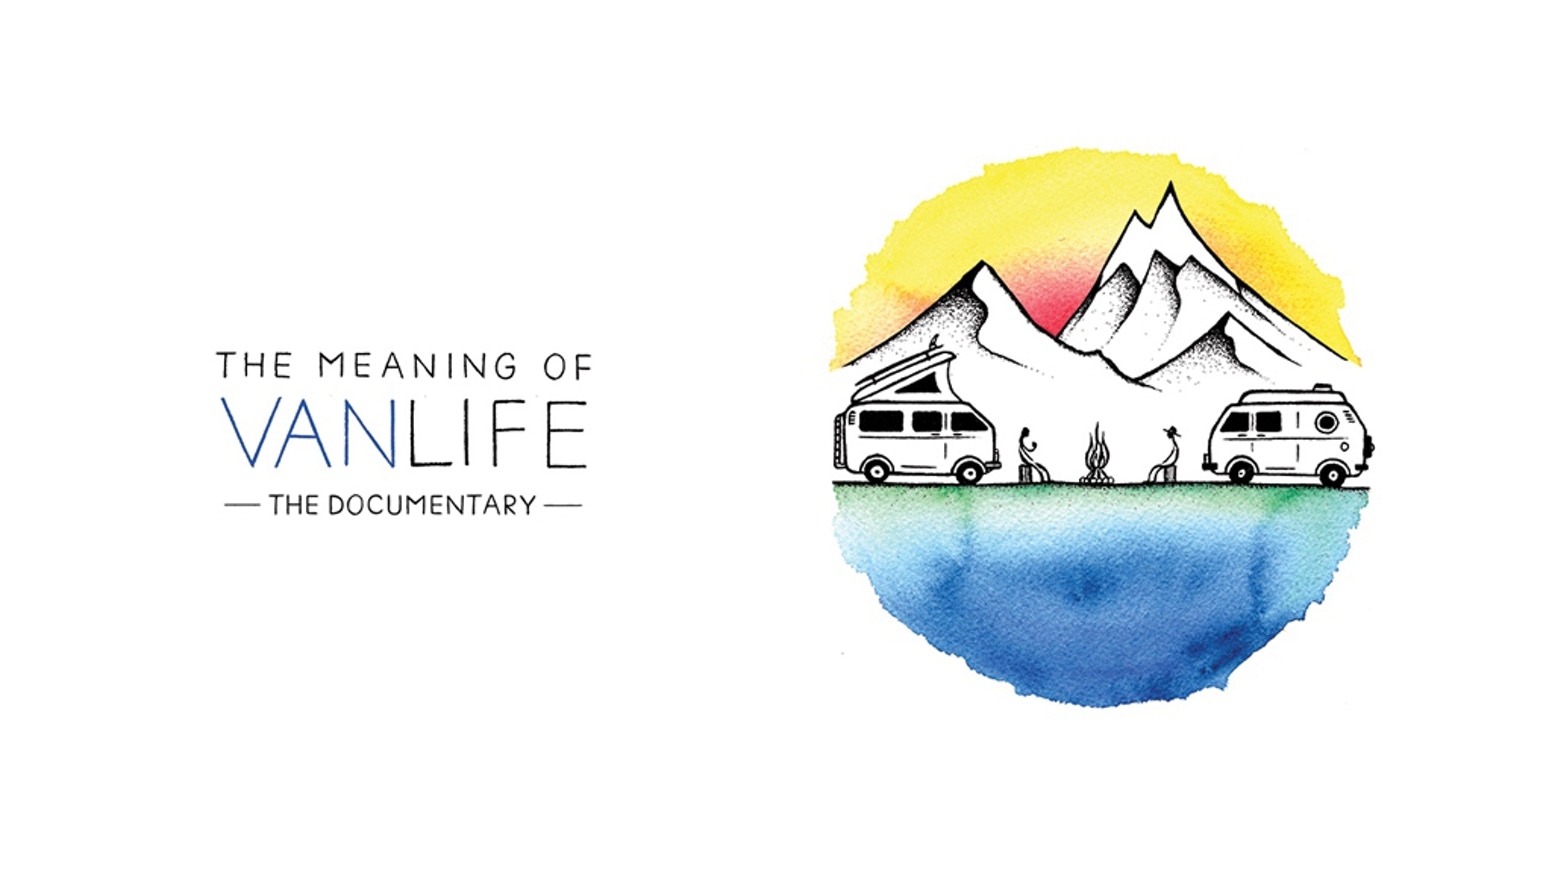 An artful and revealing documentary that explores the spirit, struggles and philosophies of the 'Vanlife' movement.